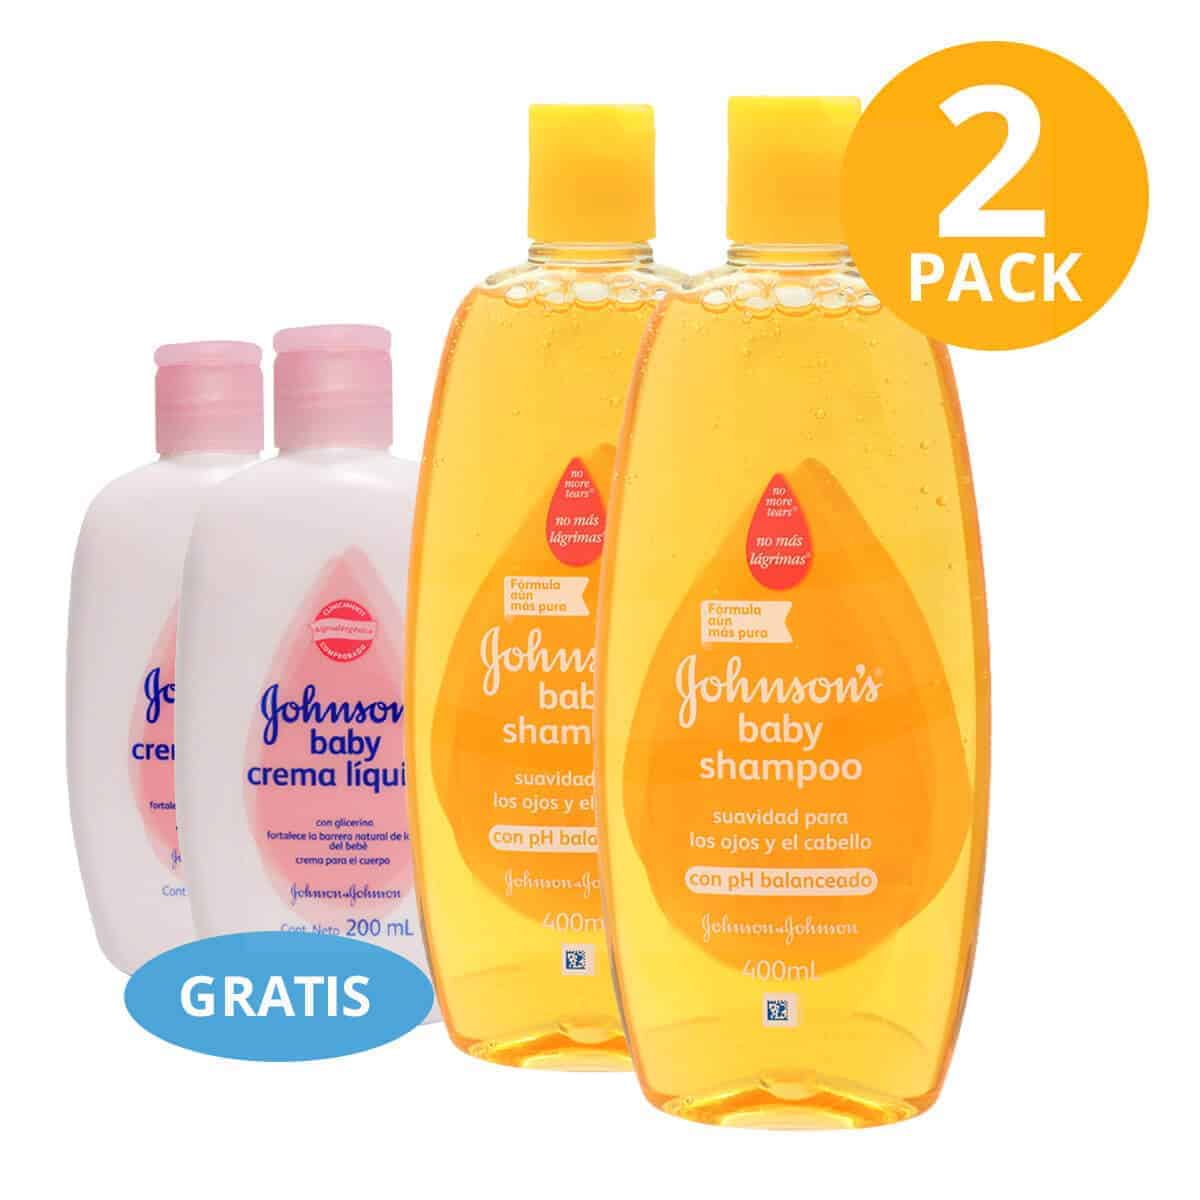 Shampoo Original Johnson's Baby, 400 ml (Pack de 2) + Crema Líquida Gratis